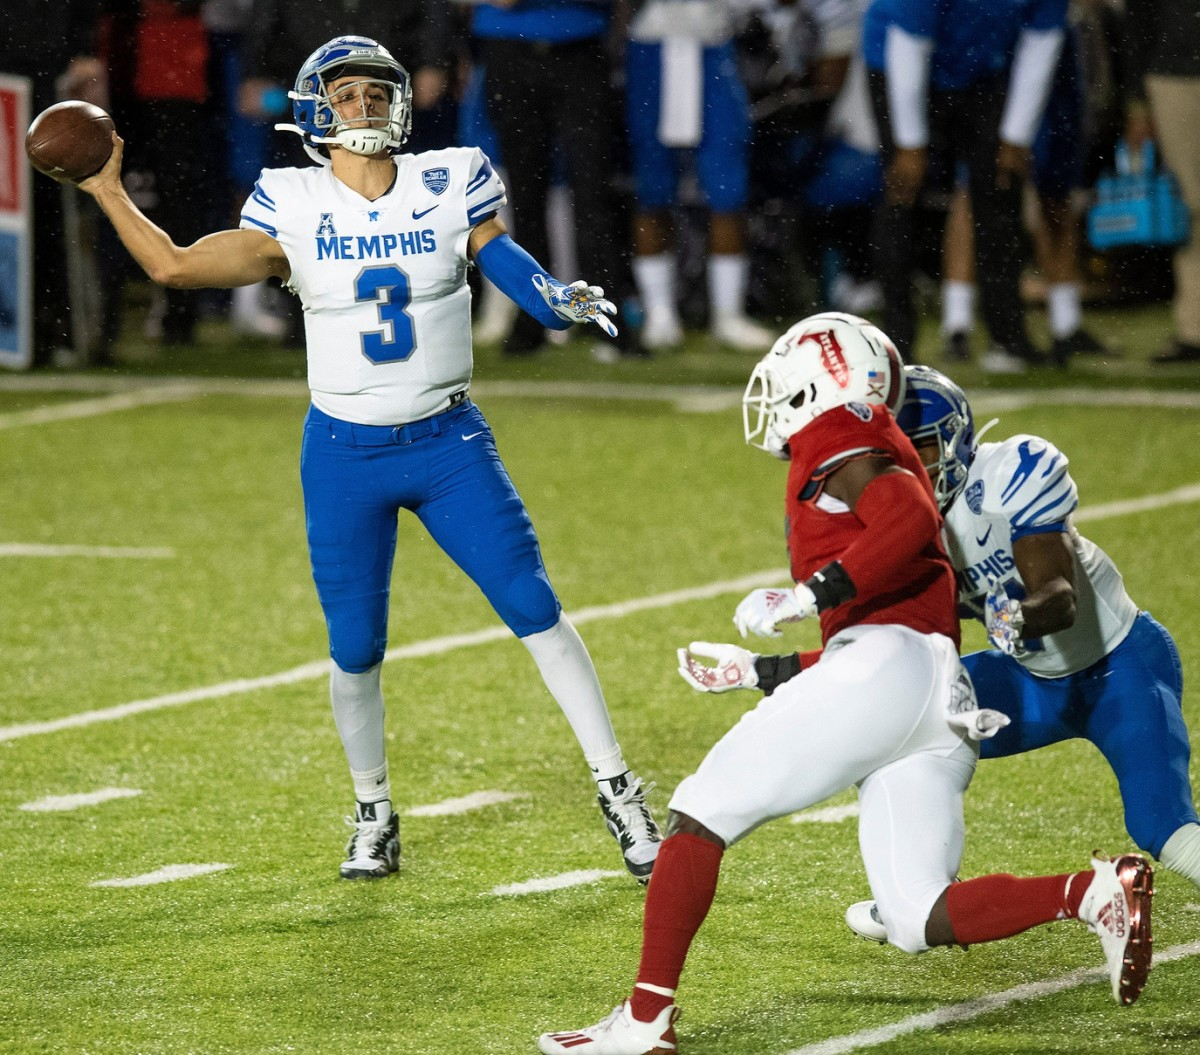 Memphis quarterback Brady White (3) throws a touchdown pass early against Florida Atlantic in the Montgomery Bowl held at Cramton Bowl in Montgomery, Ala., on Wednesday December 23, 2020.